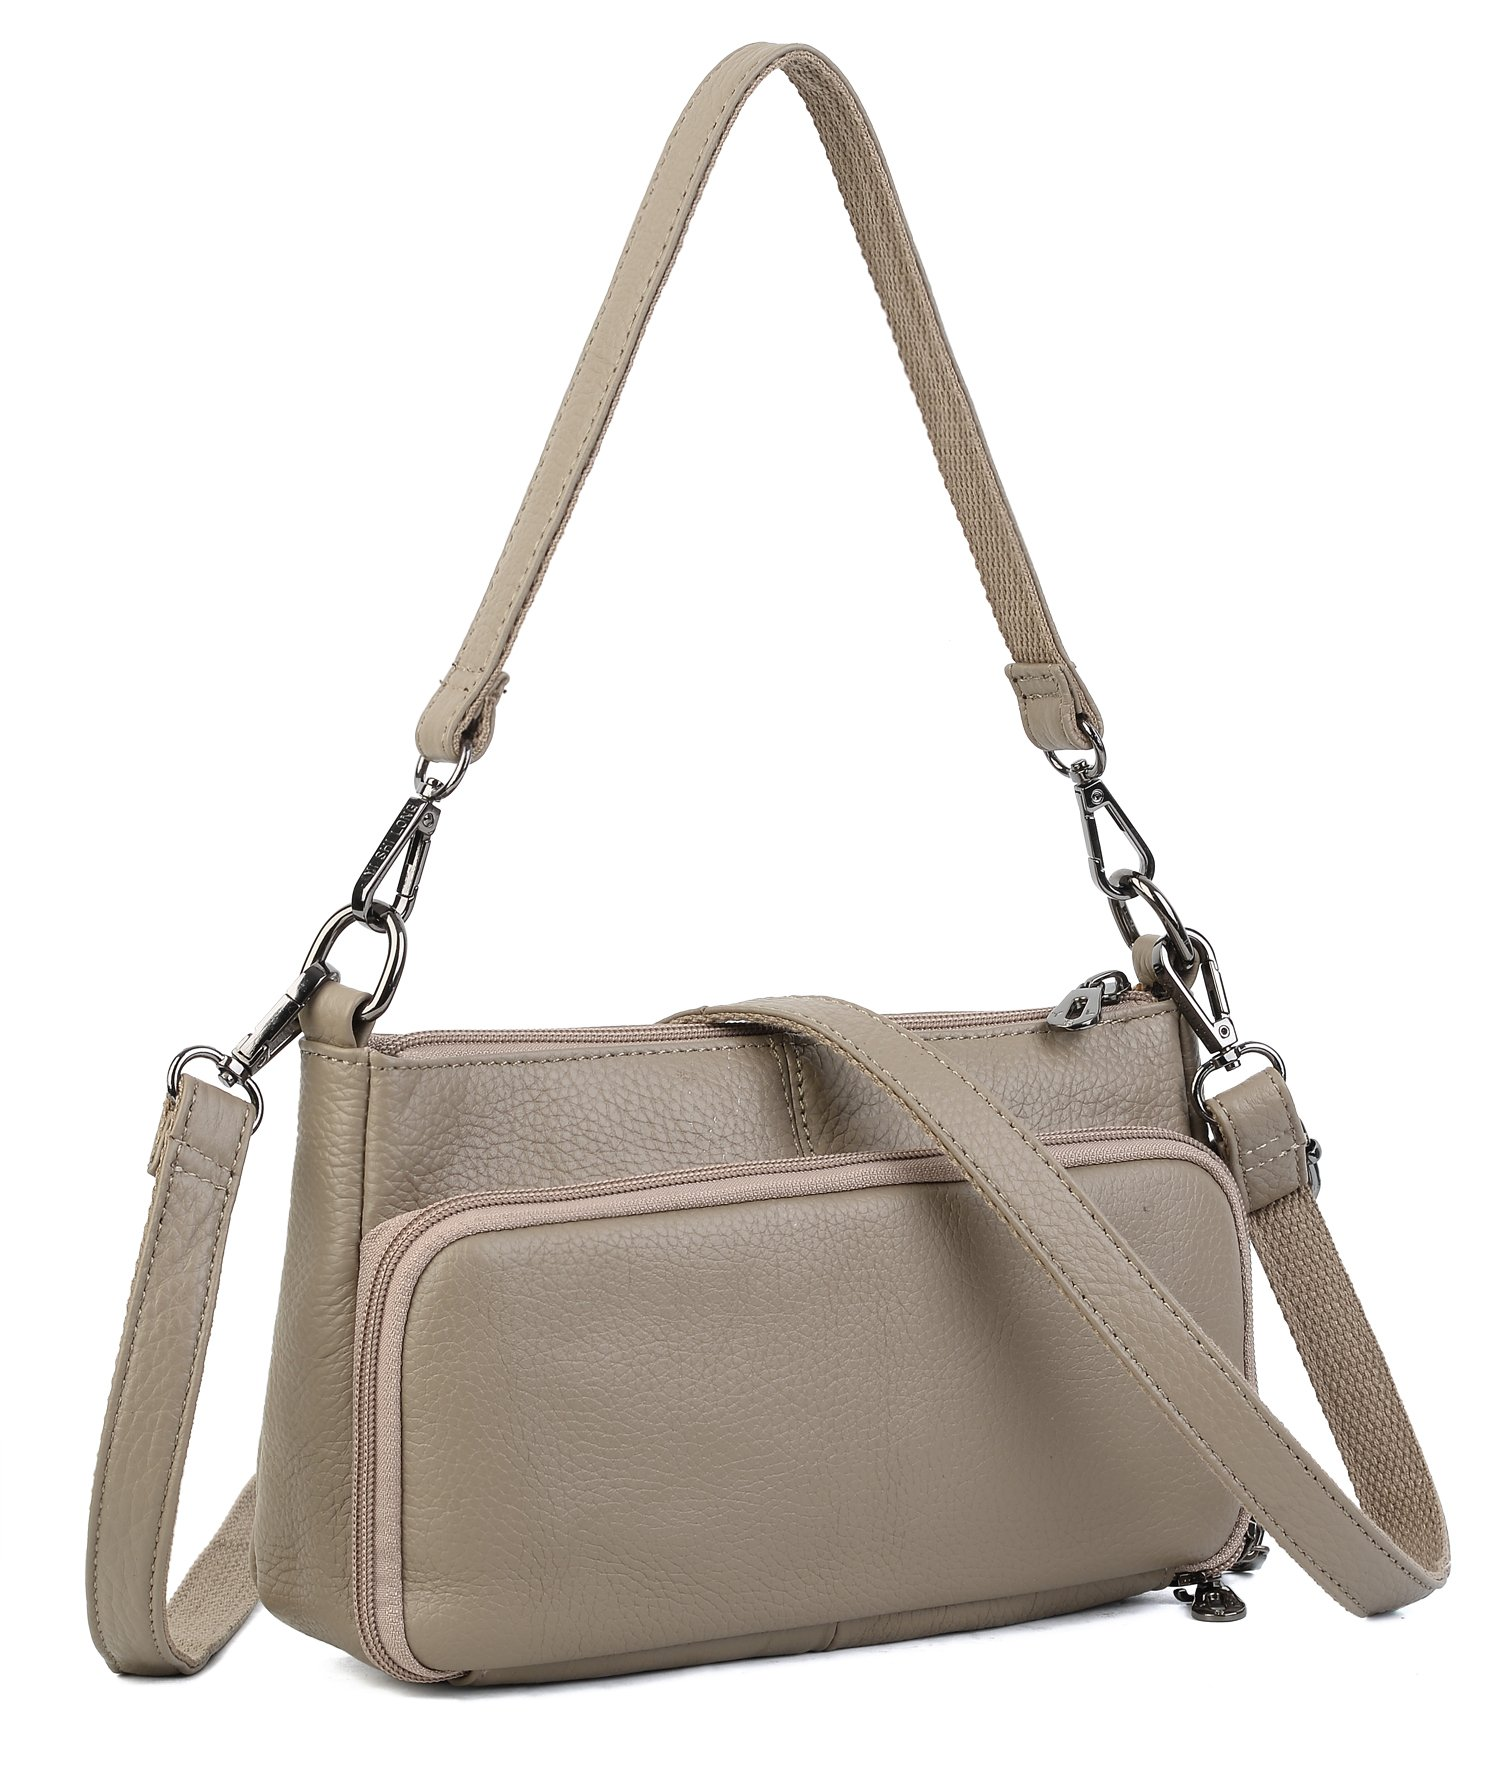 YALUXE Women's Small Size Crossbody Bag Leather Mini Purse with 6 Card Slots and fit 5.5'' Smartphone Grey